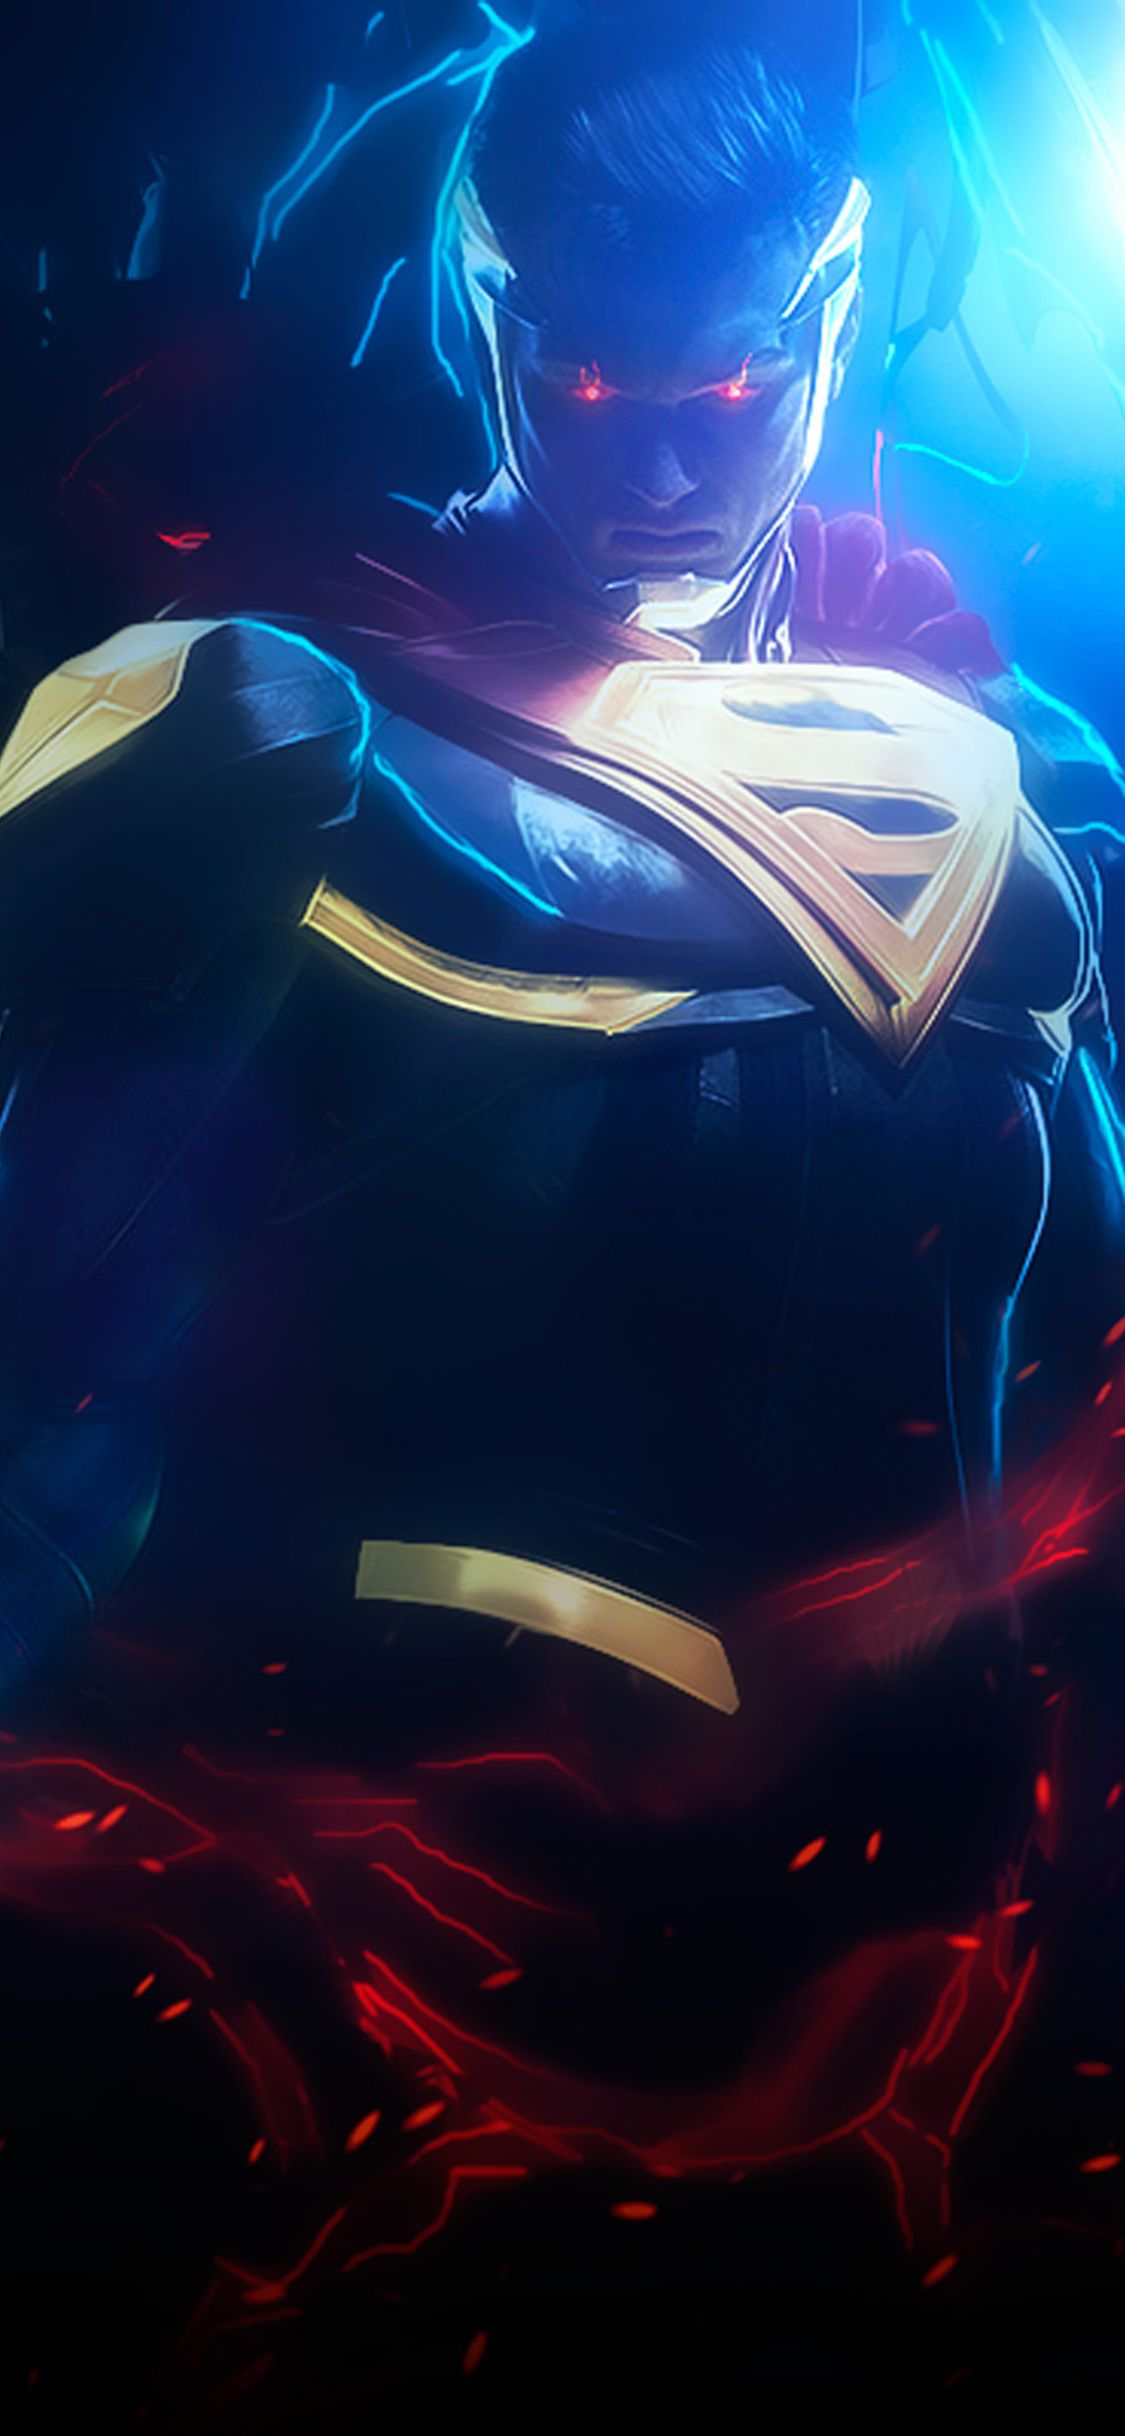 1125x2436 Superman Injustice 2 Art Iphone Xs Iphone 10 Iphone X Hd